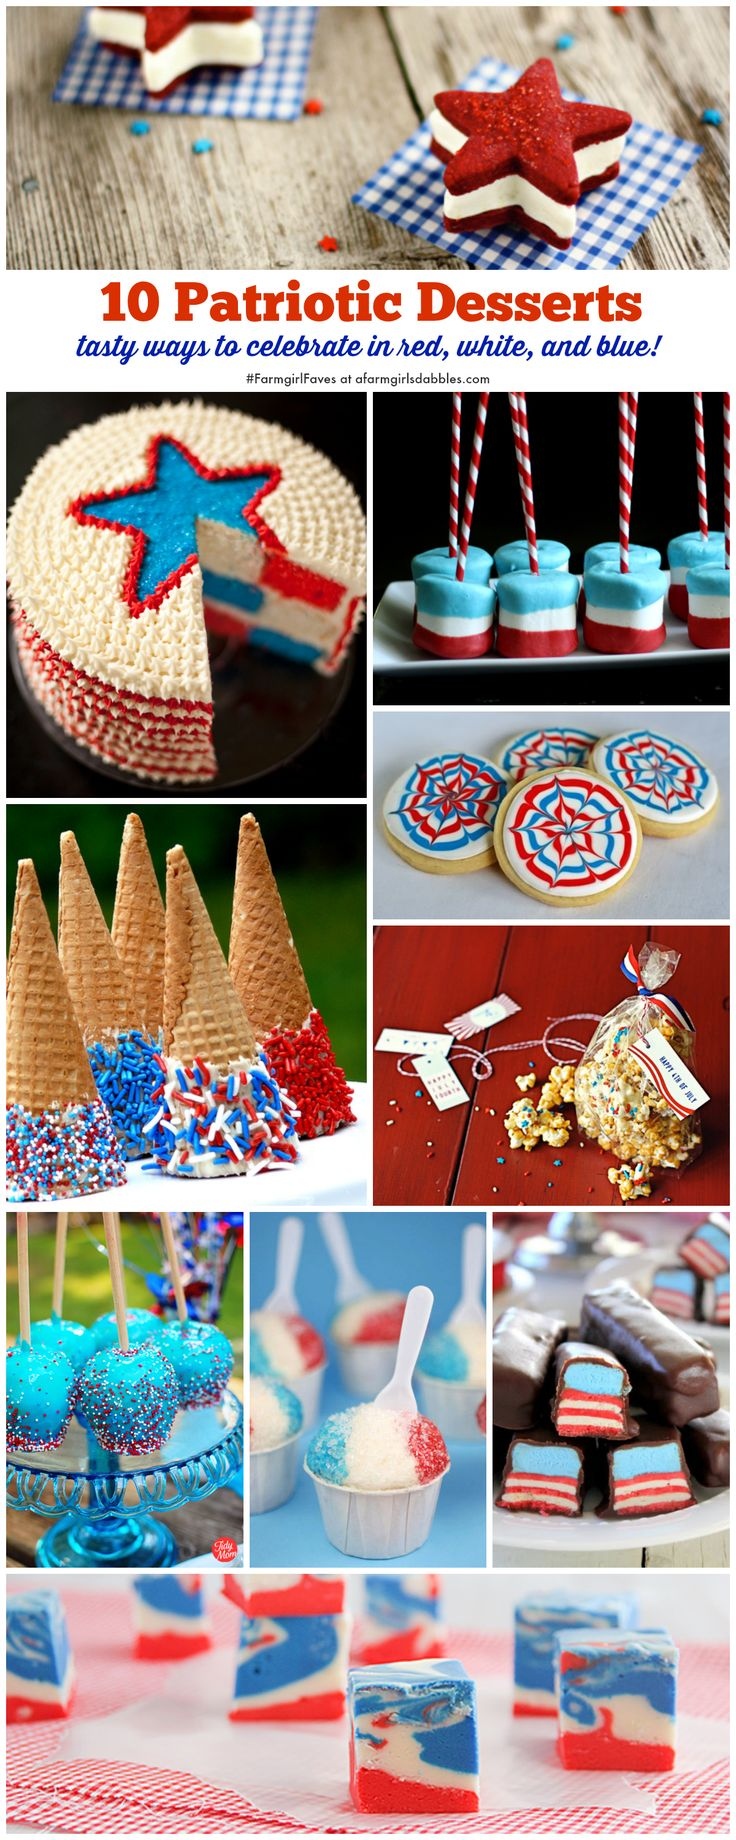 10 Patriotic Desserts, perfect for the 4th of July and Memorial Day! afarmgirlsdabbles.com #farmgirlfaves #patriotic #4thofjuly #memorialday...